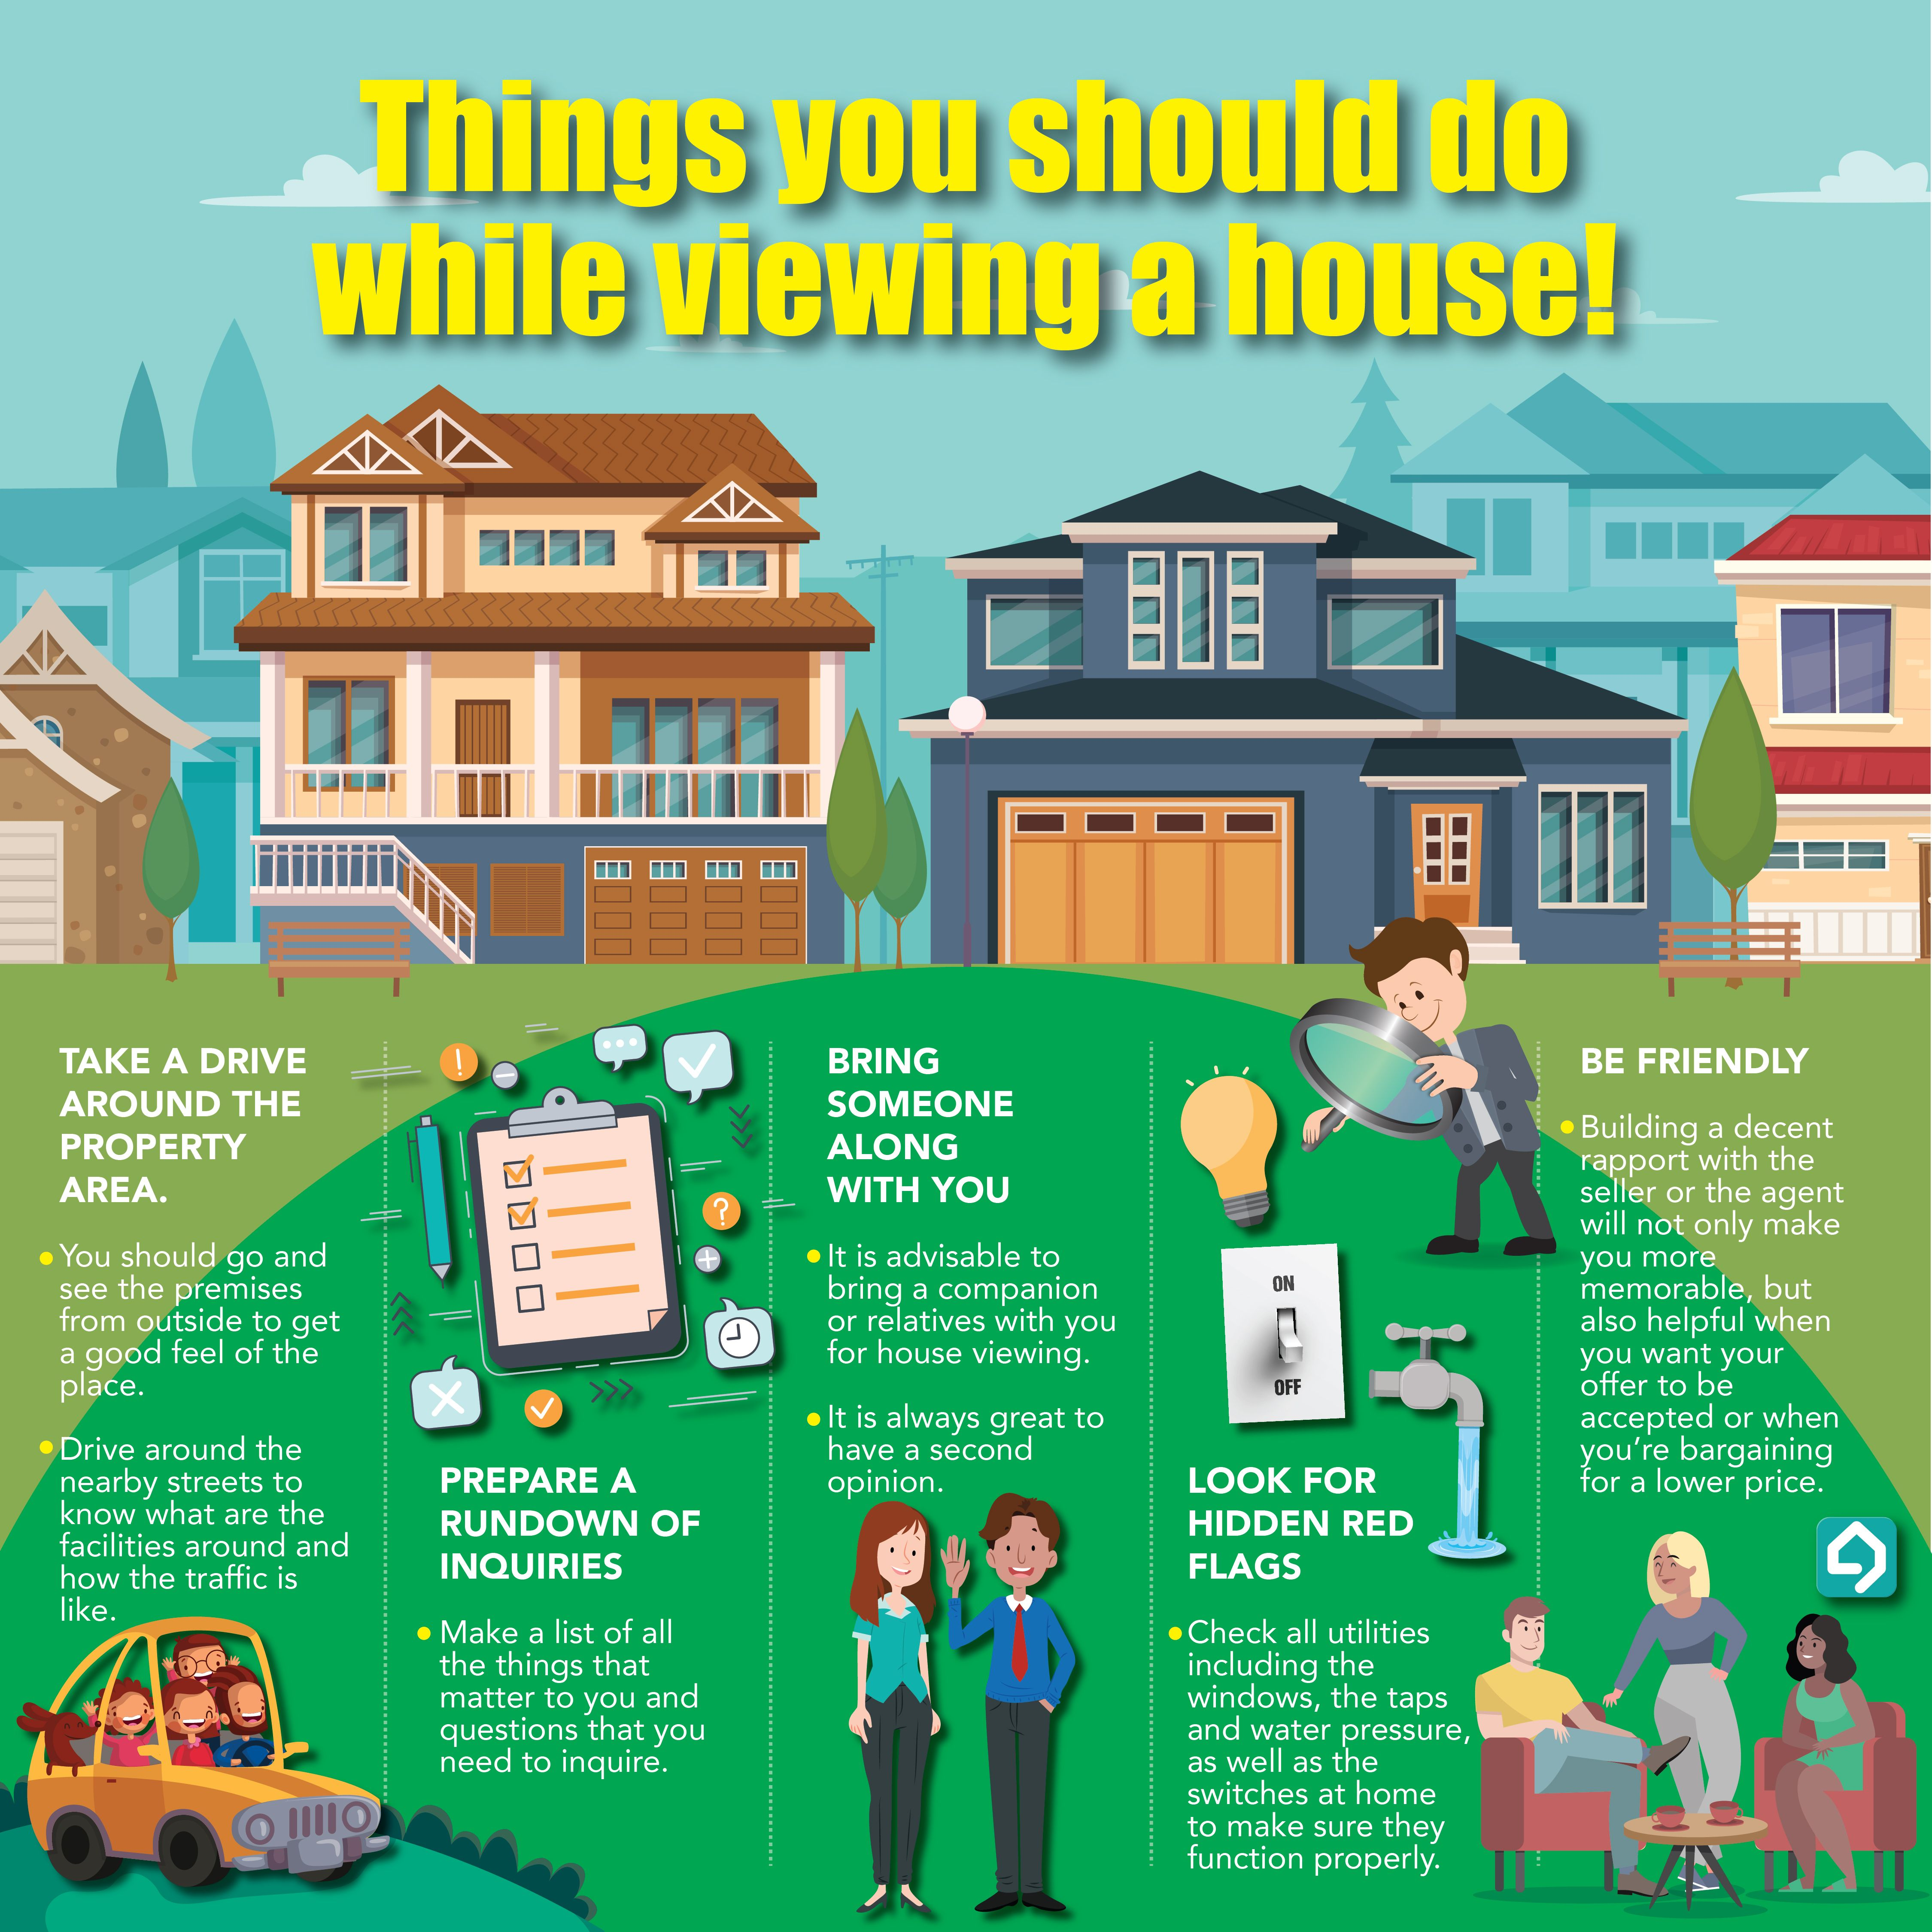 Be It Renting Or Buying A House House Viewing Is Very Important Especially As A First Time Homebuyer This Is Some House Viewing How To Memorize Things House